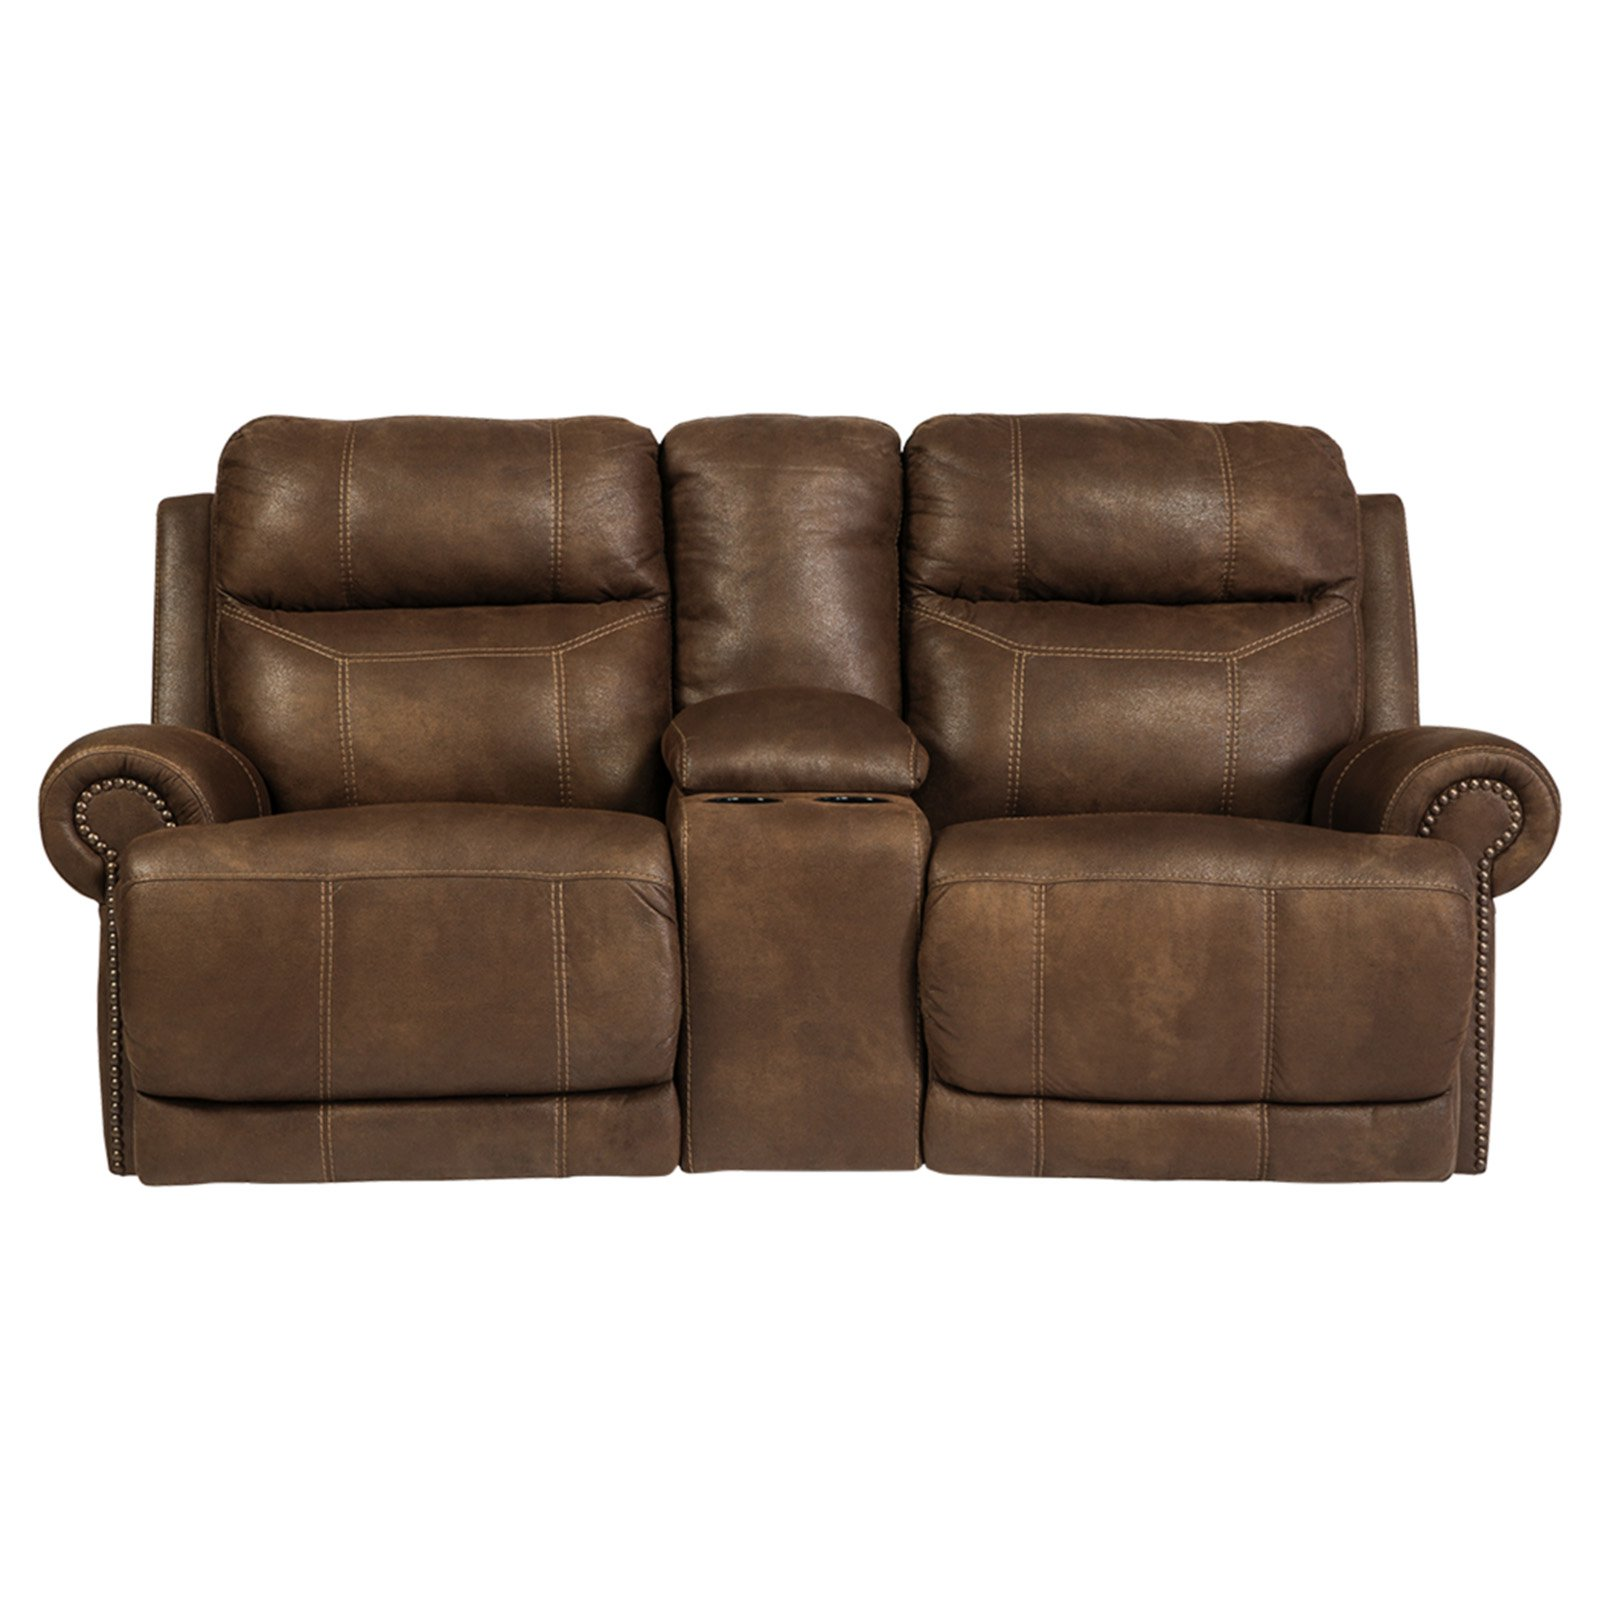 Signature Design by Ashley Austere Double Reclining Loveseat with Console